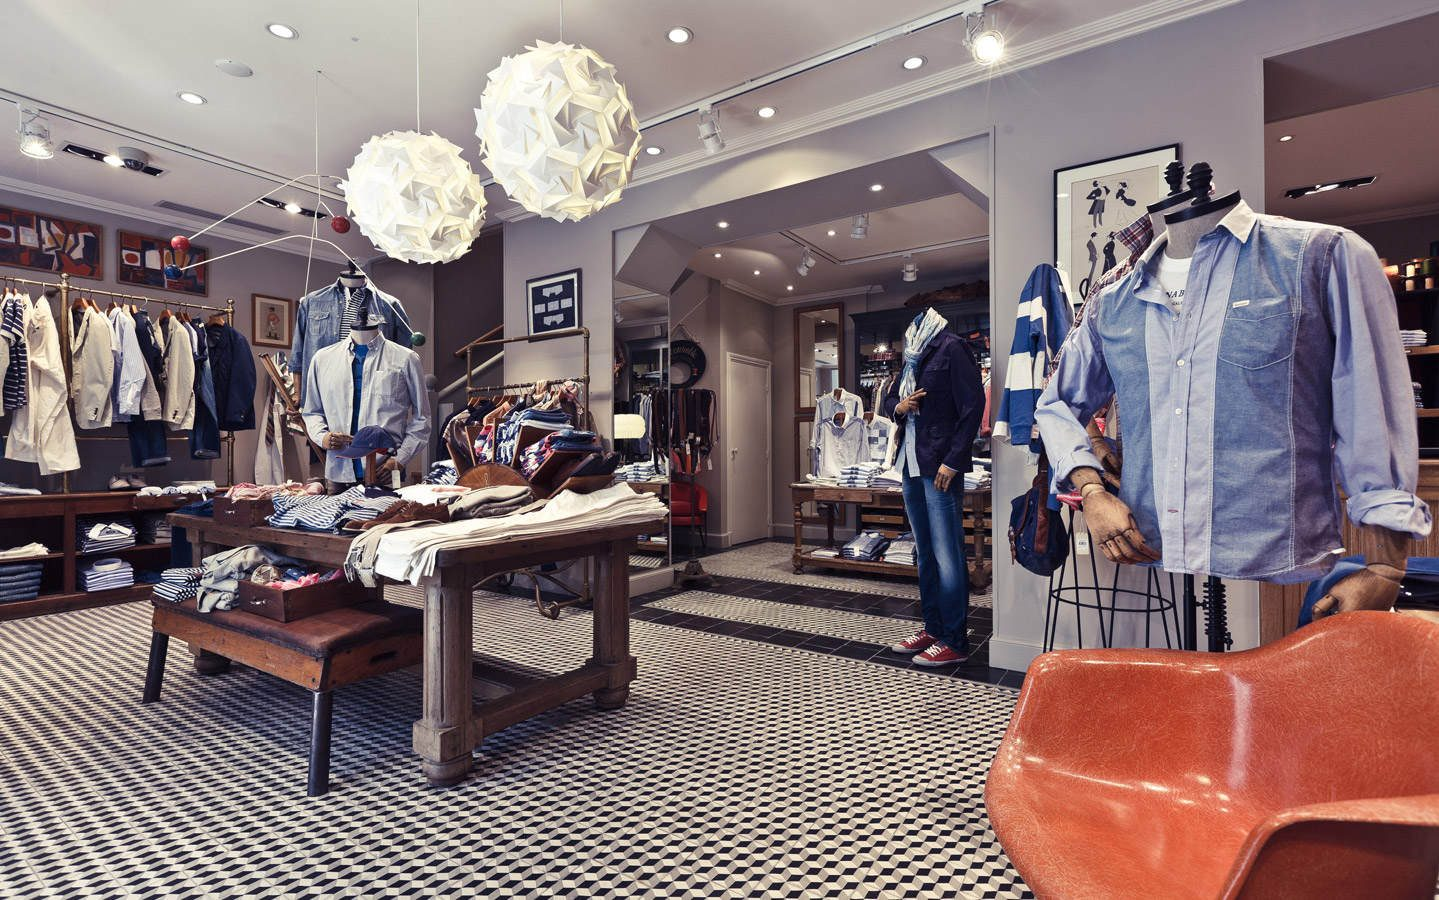 Fashion retail decoration shops design ideas for mens - Men s clothing store interior design ideas ...